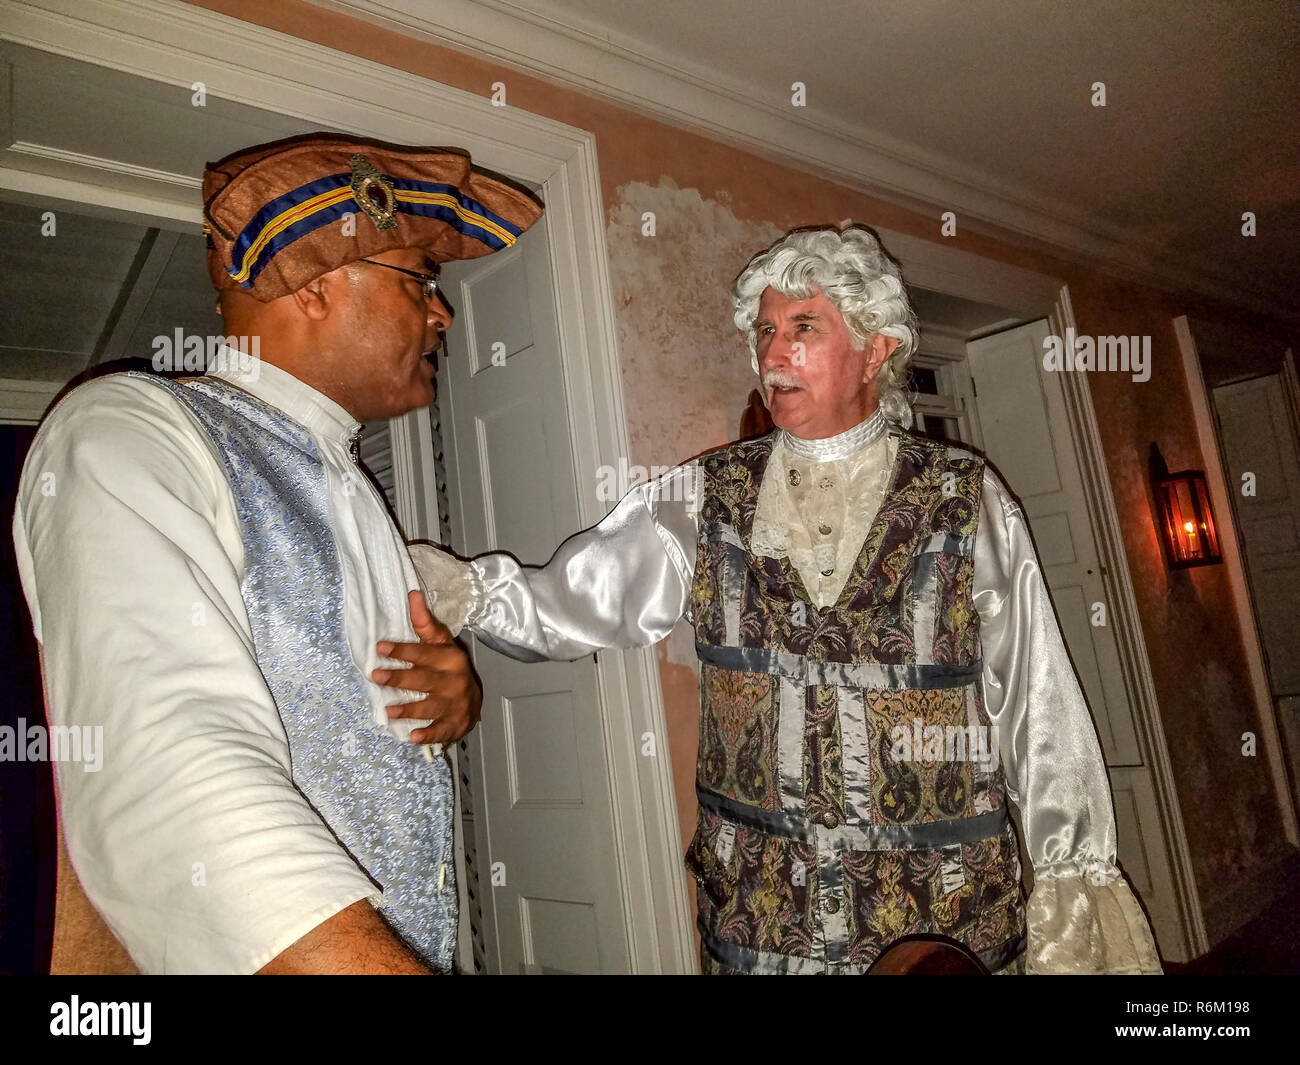 'George Washington' with his friend but also house slave, Pompey during recreation of a dinner of those times for visitors at 'Dinner With George.' - Stock Image